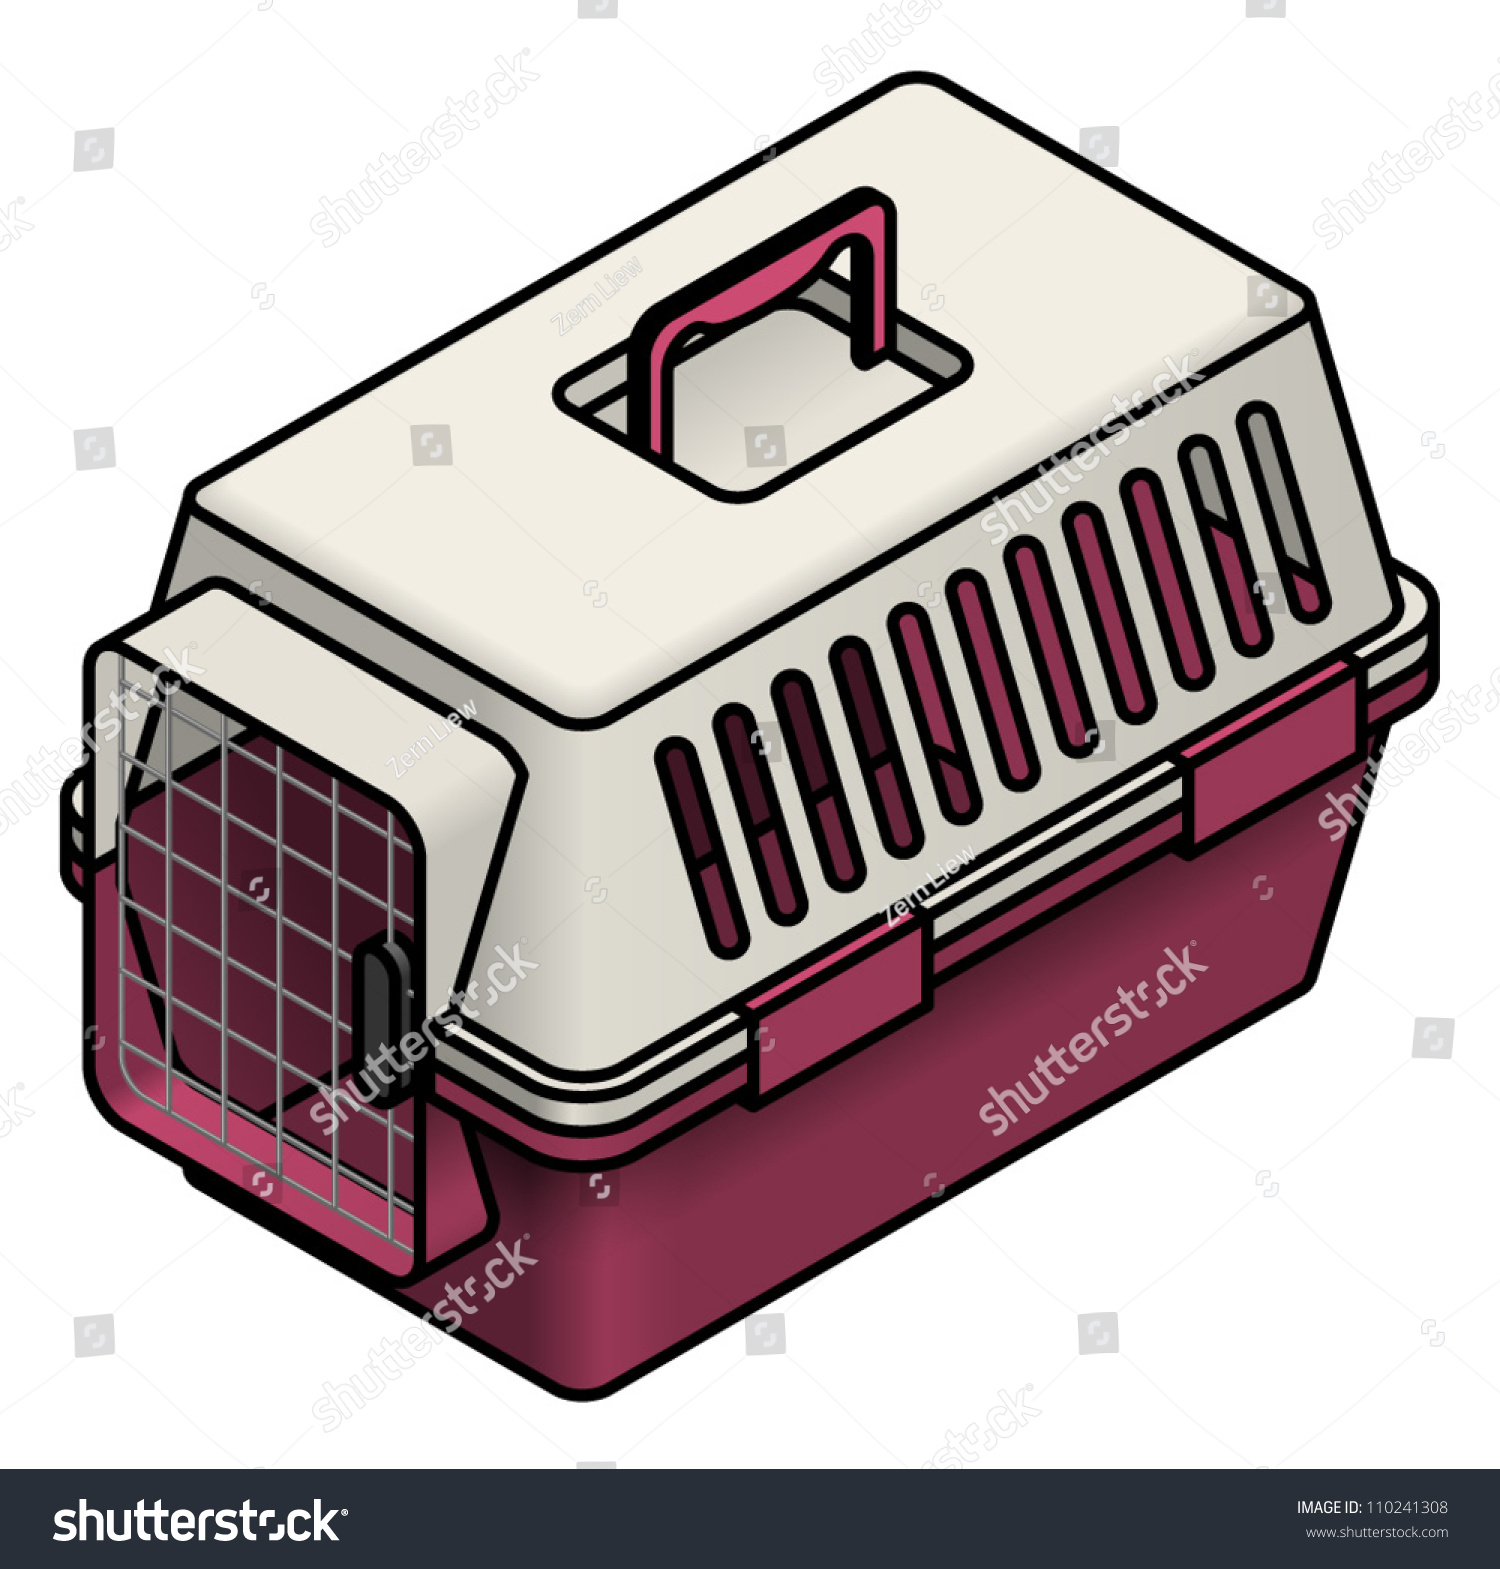 cat cage clipart - photo #19